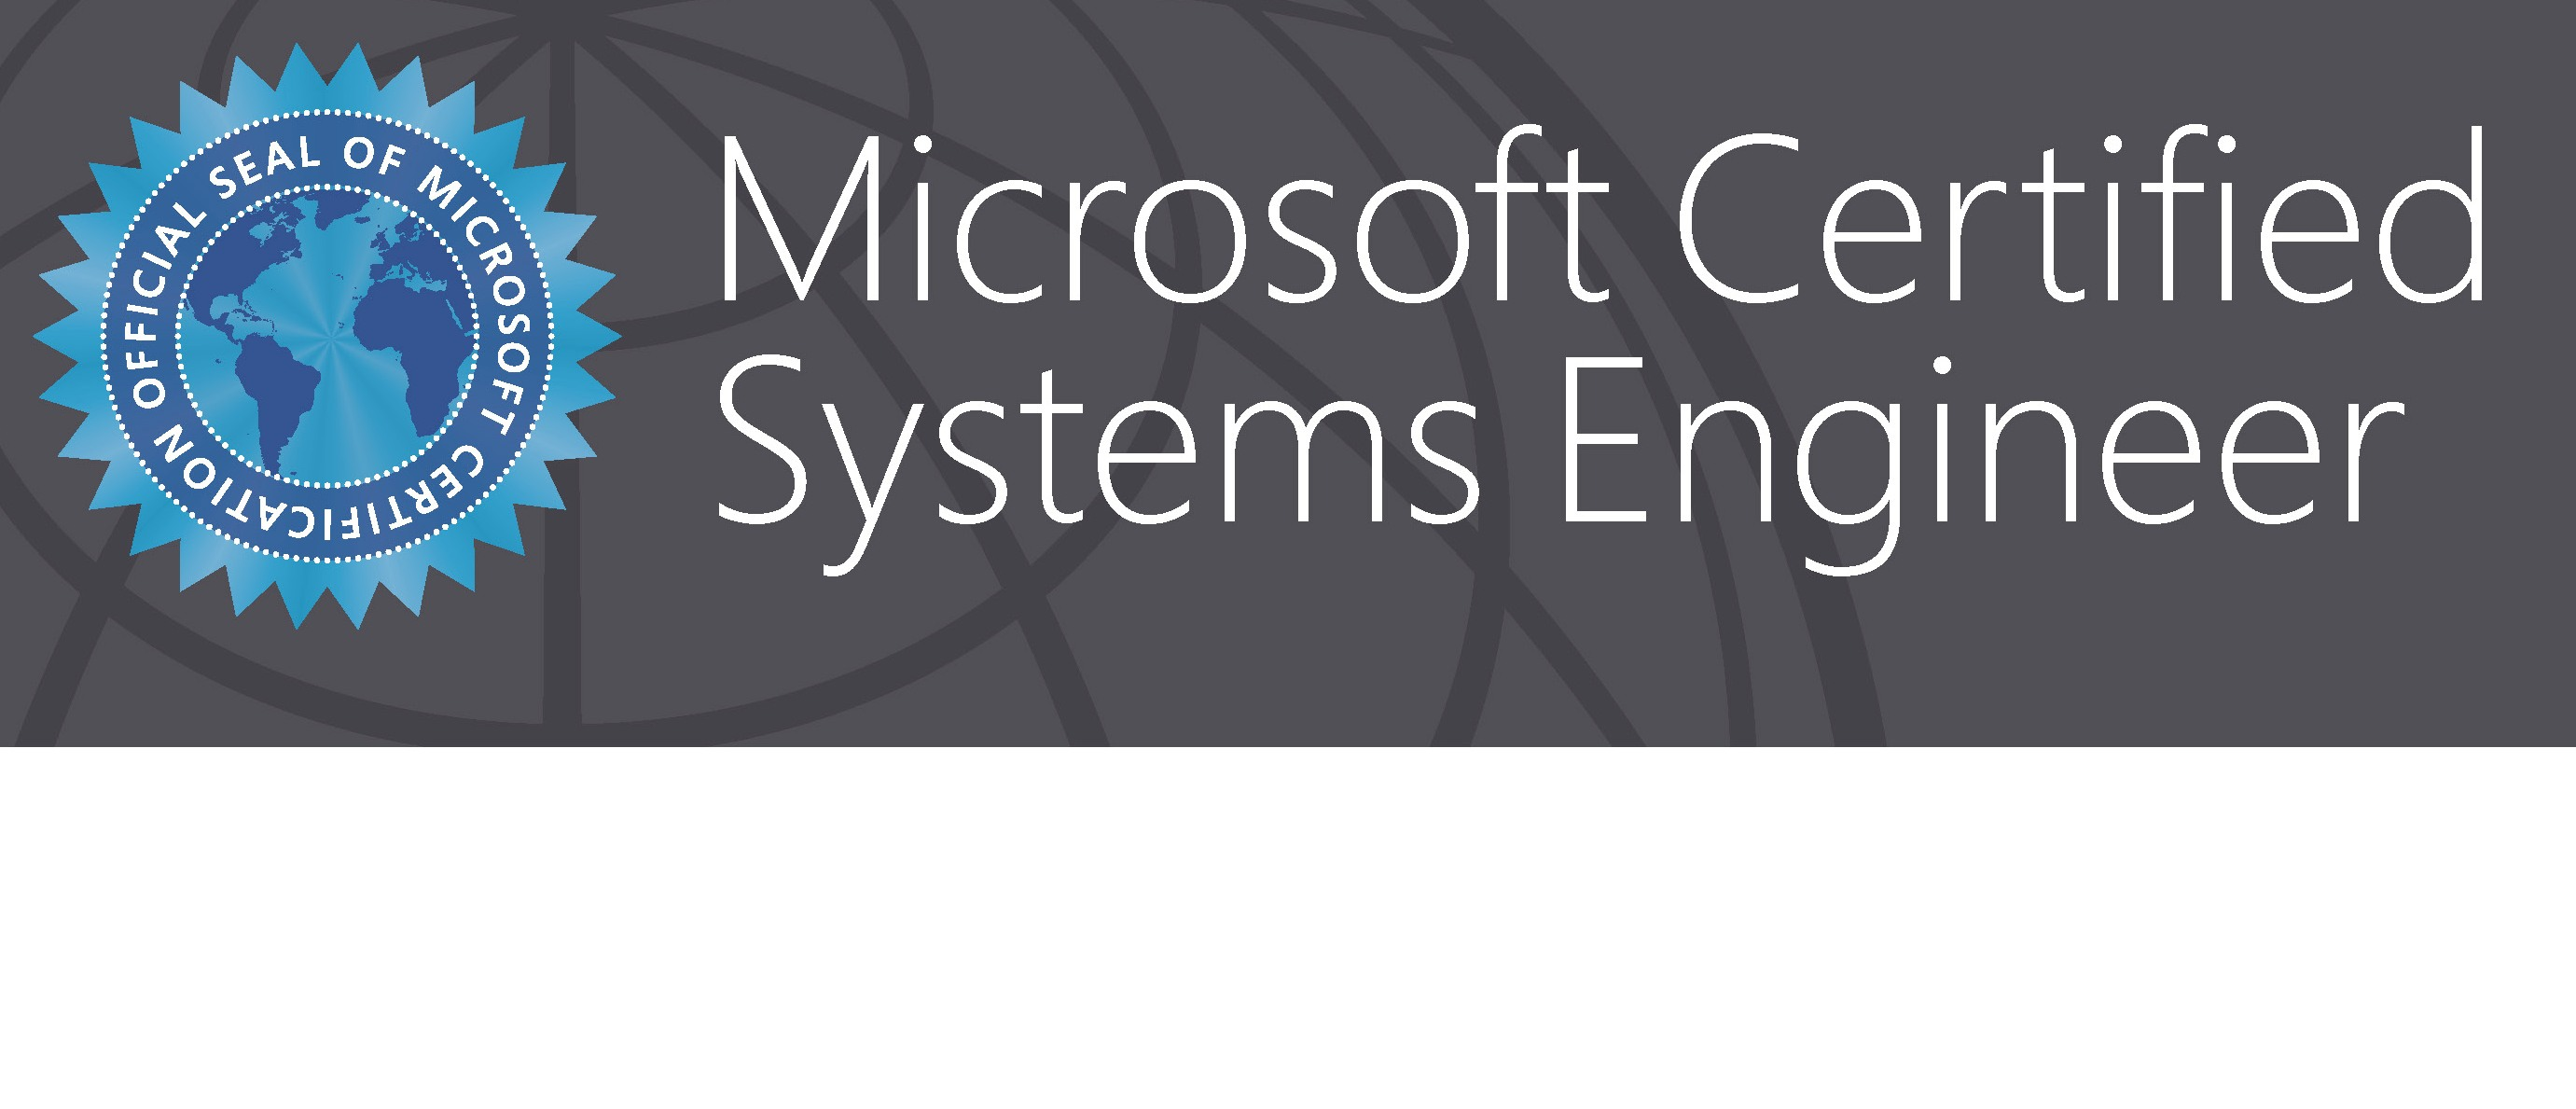 Microsoft Certified Systems Engineer Certification Gallery